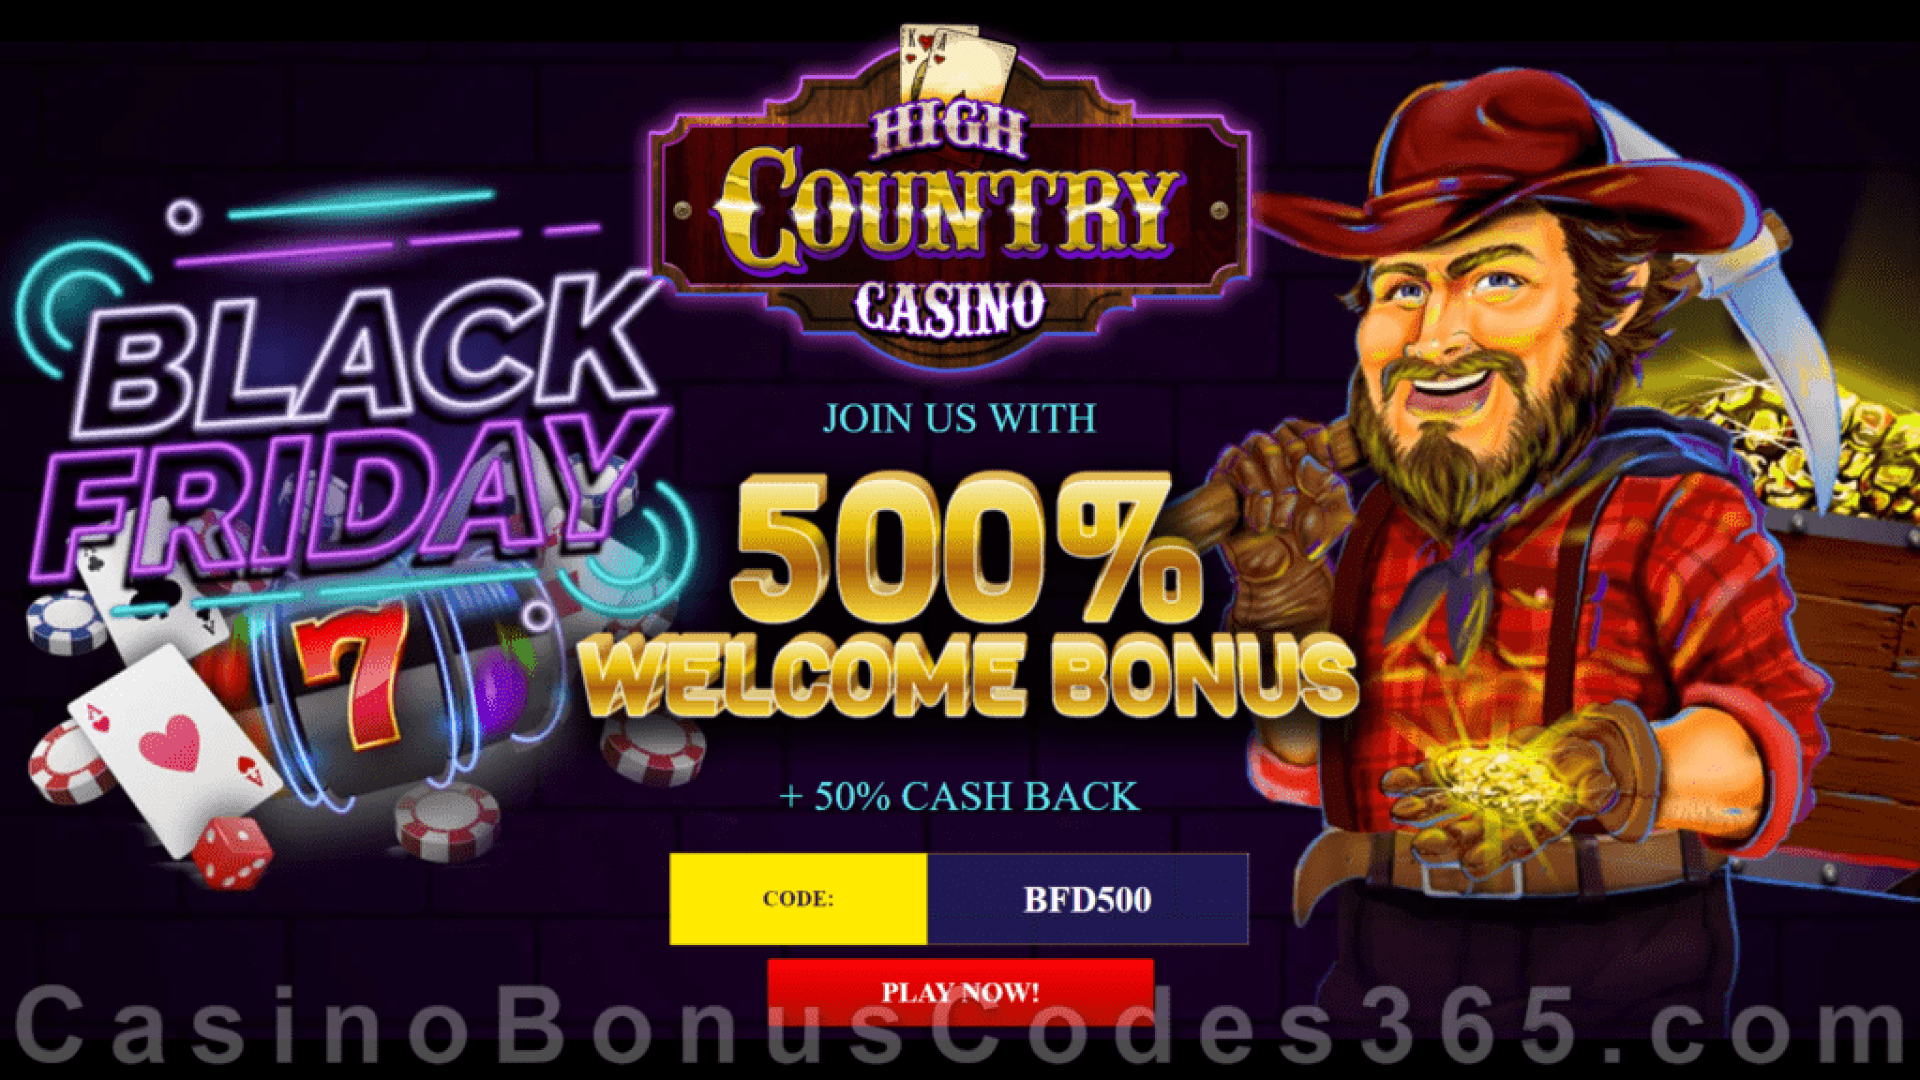 High Country Casino 500% Match plus 50% Cashback Black Friday Welcome Sale